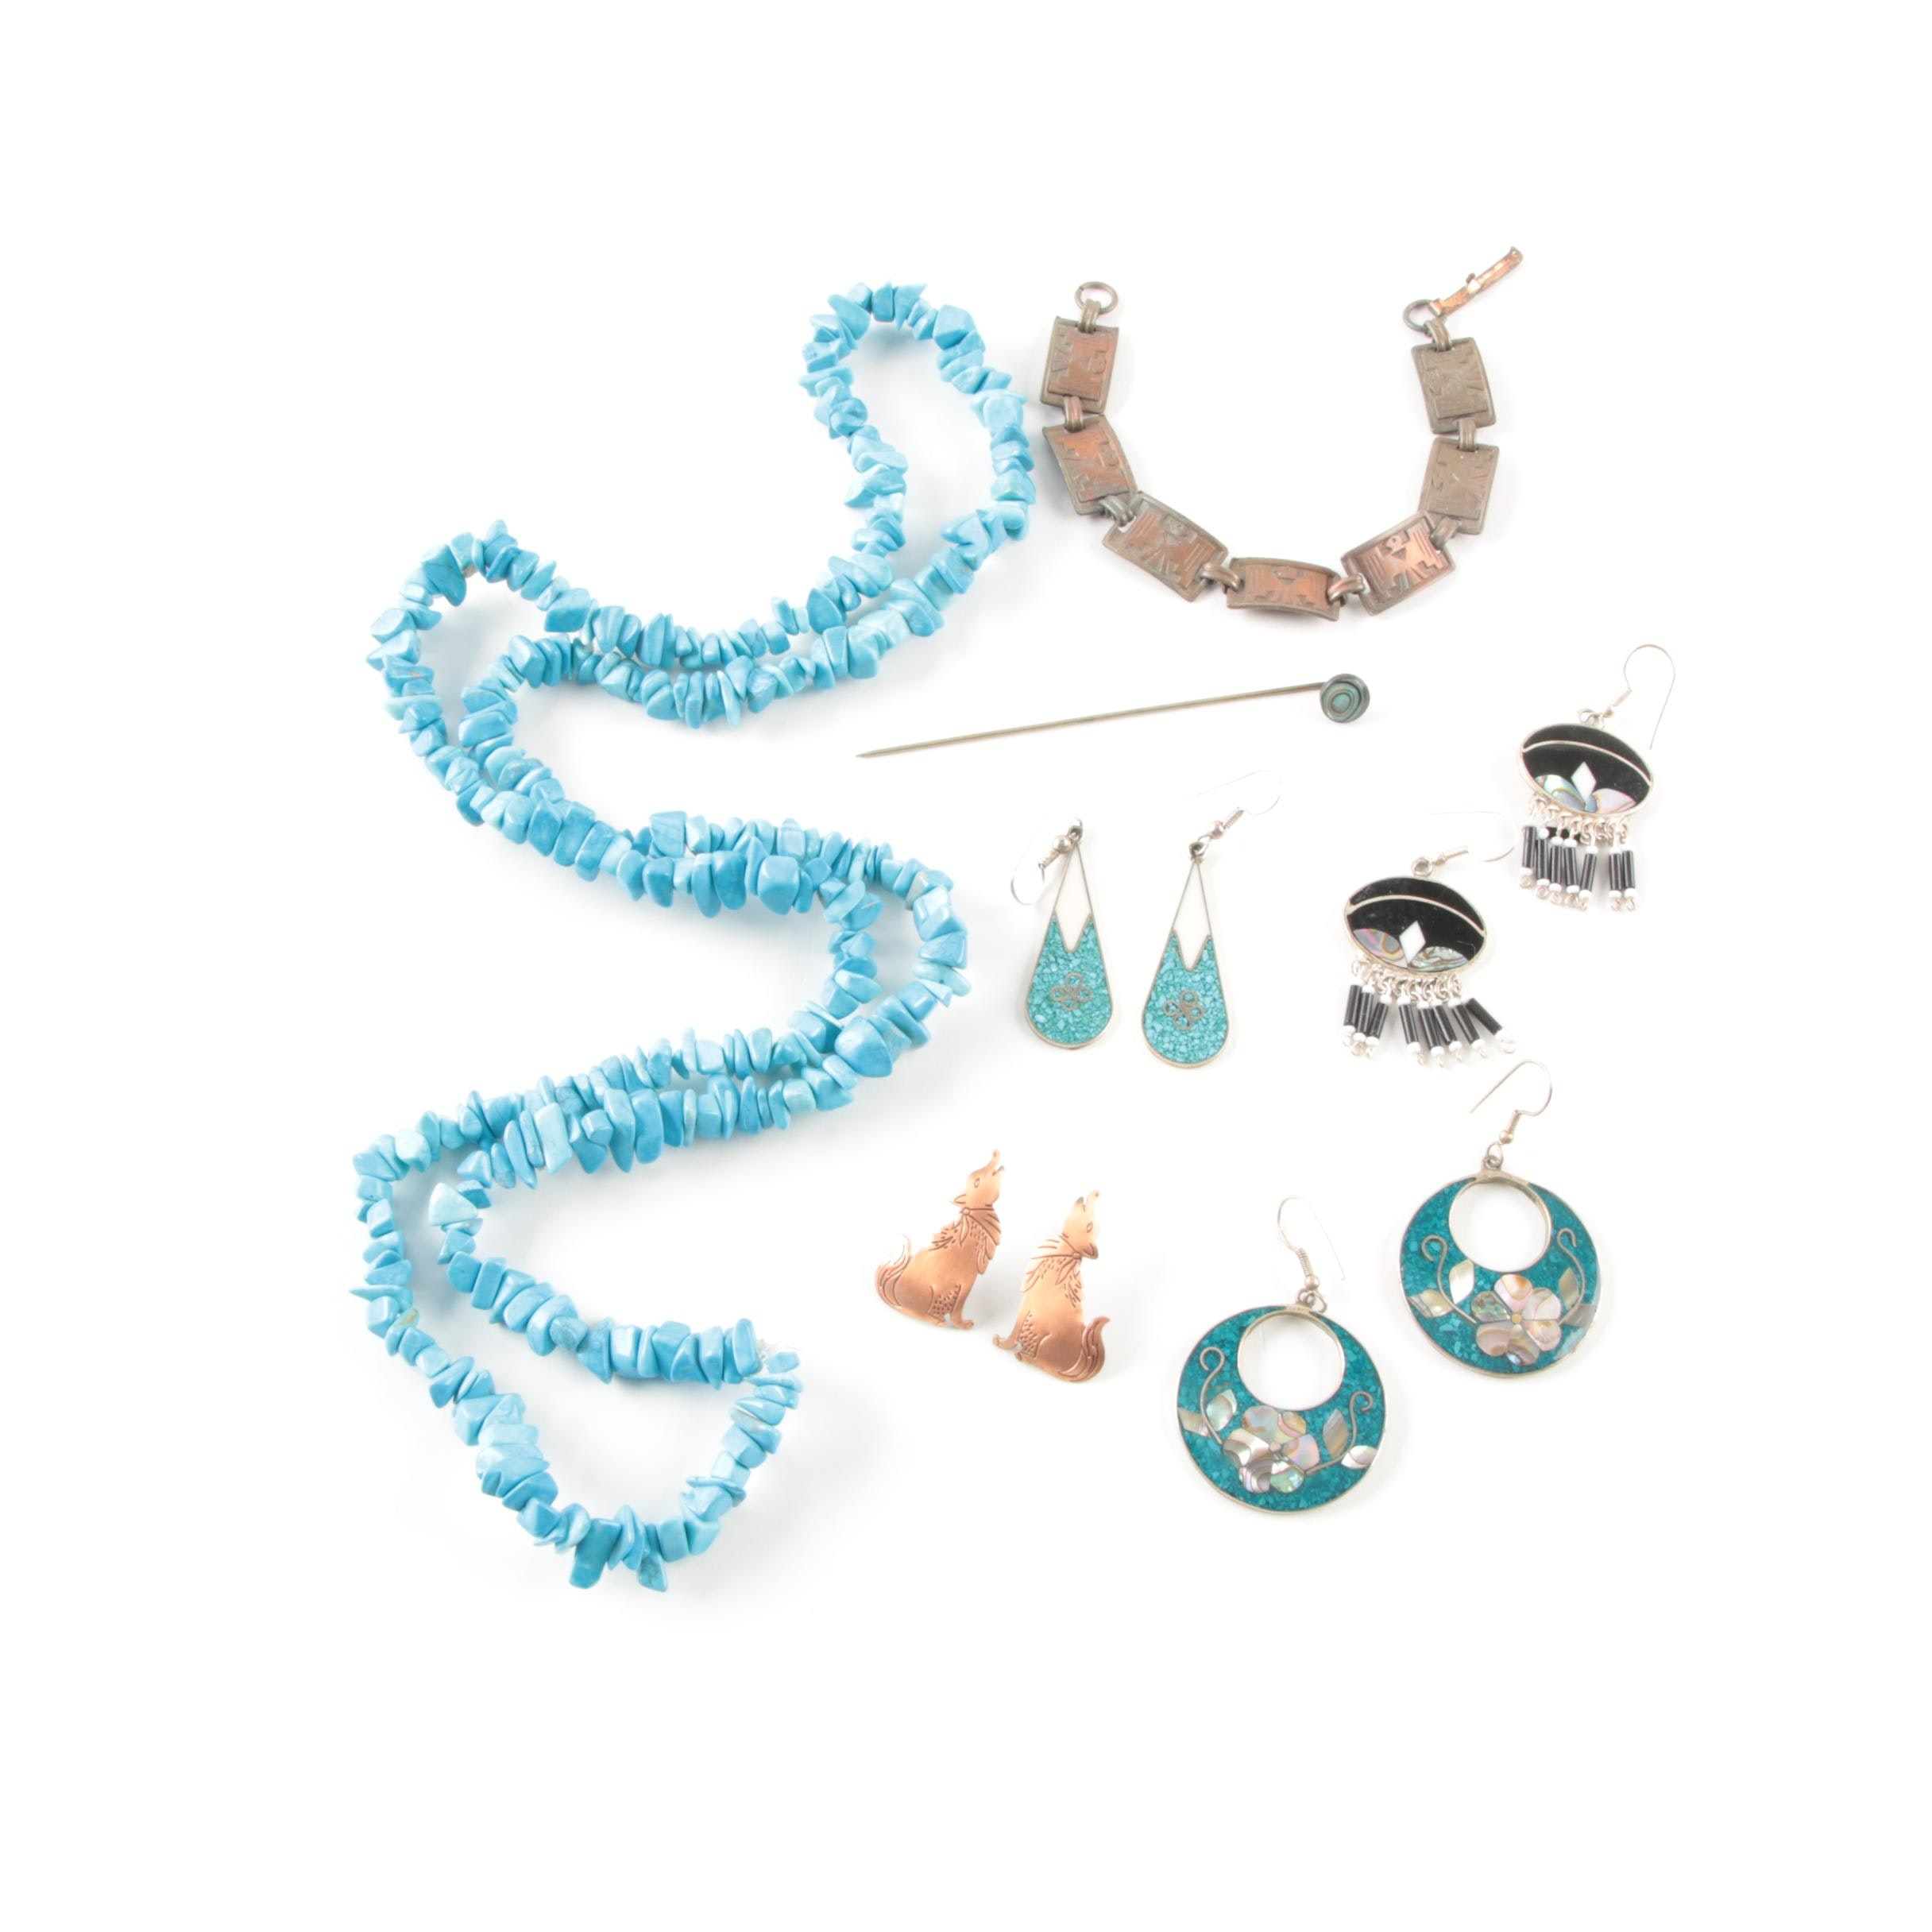 Costume and Gemstone Jewelry Including Abalone